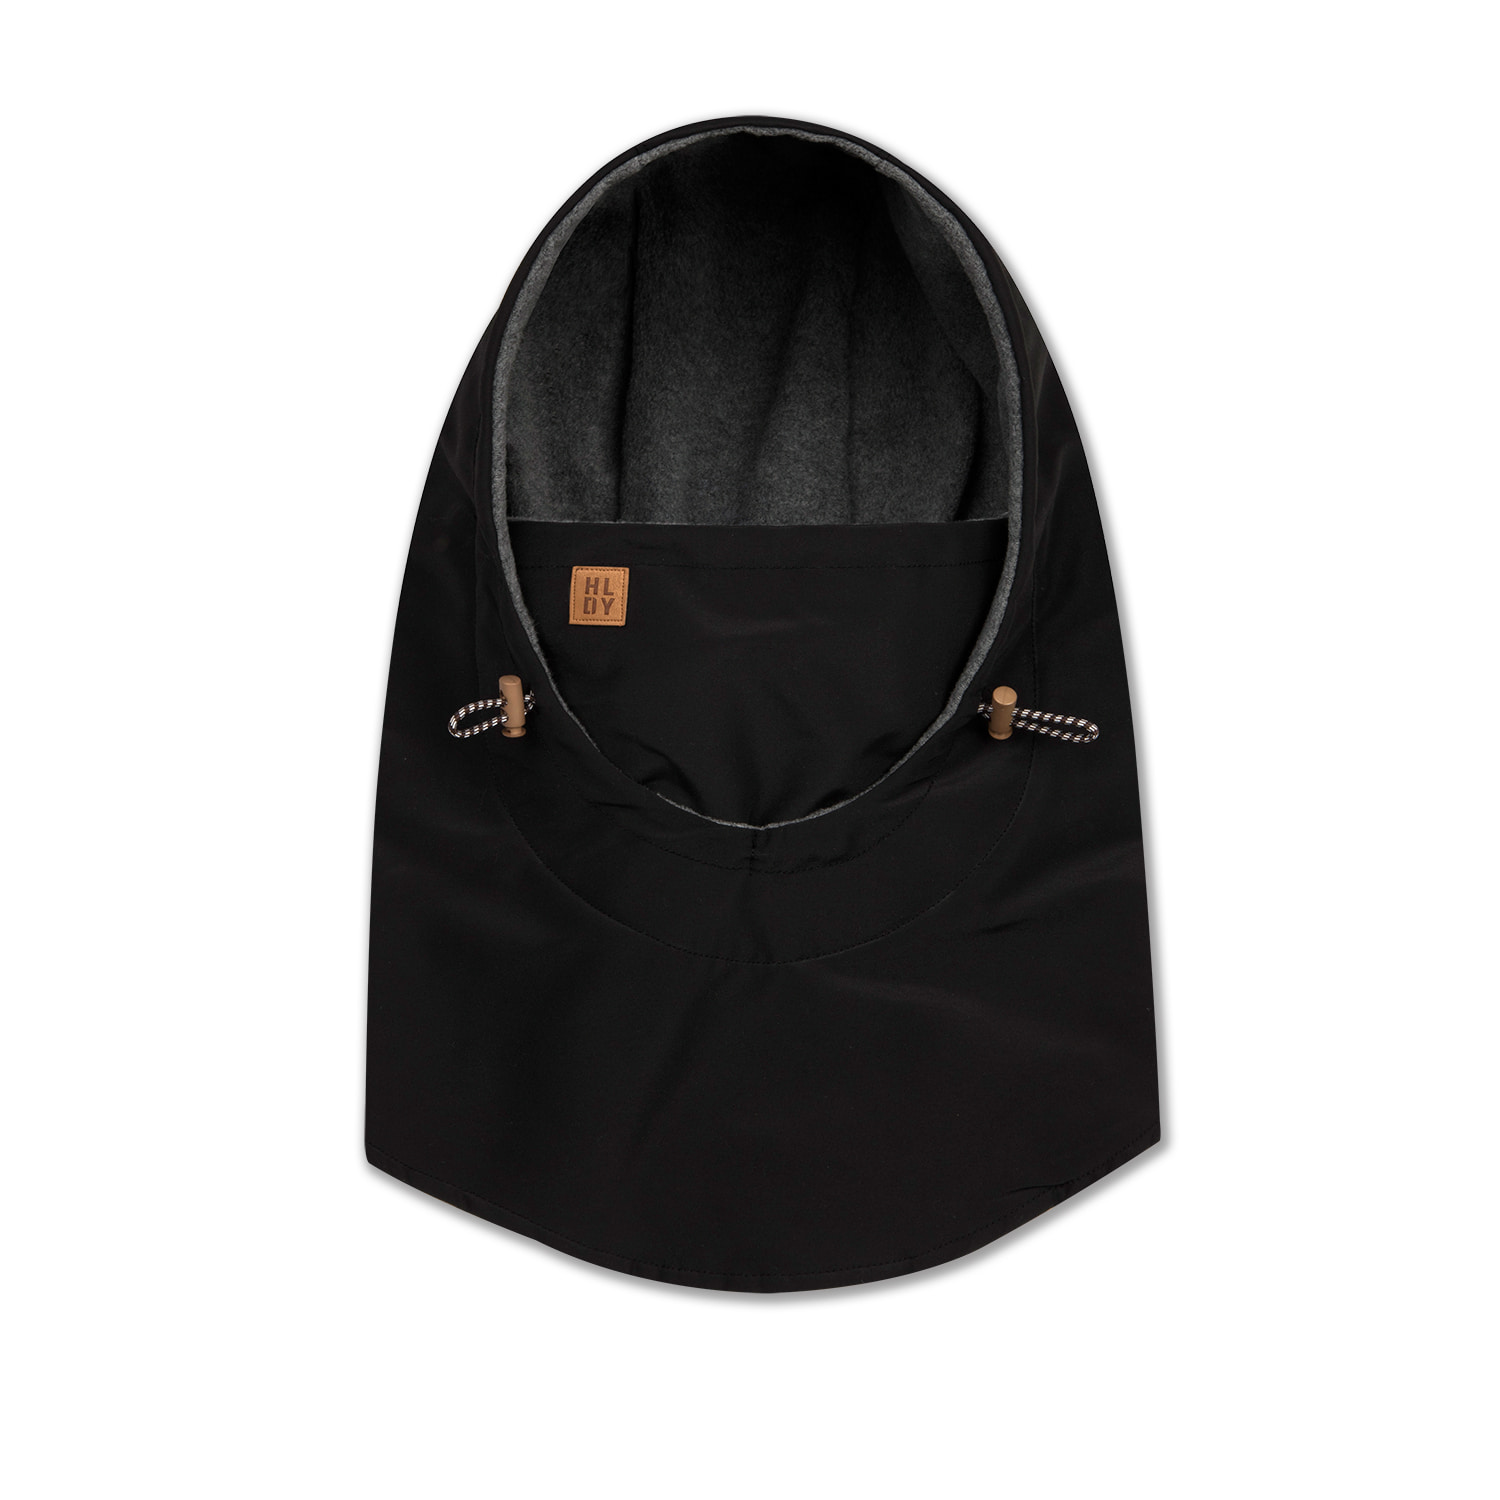 HELMET hood warmer[waterproof,방수] - blackHOLIDAY OUTERWEAR